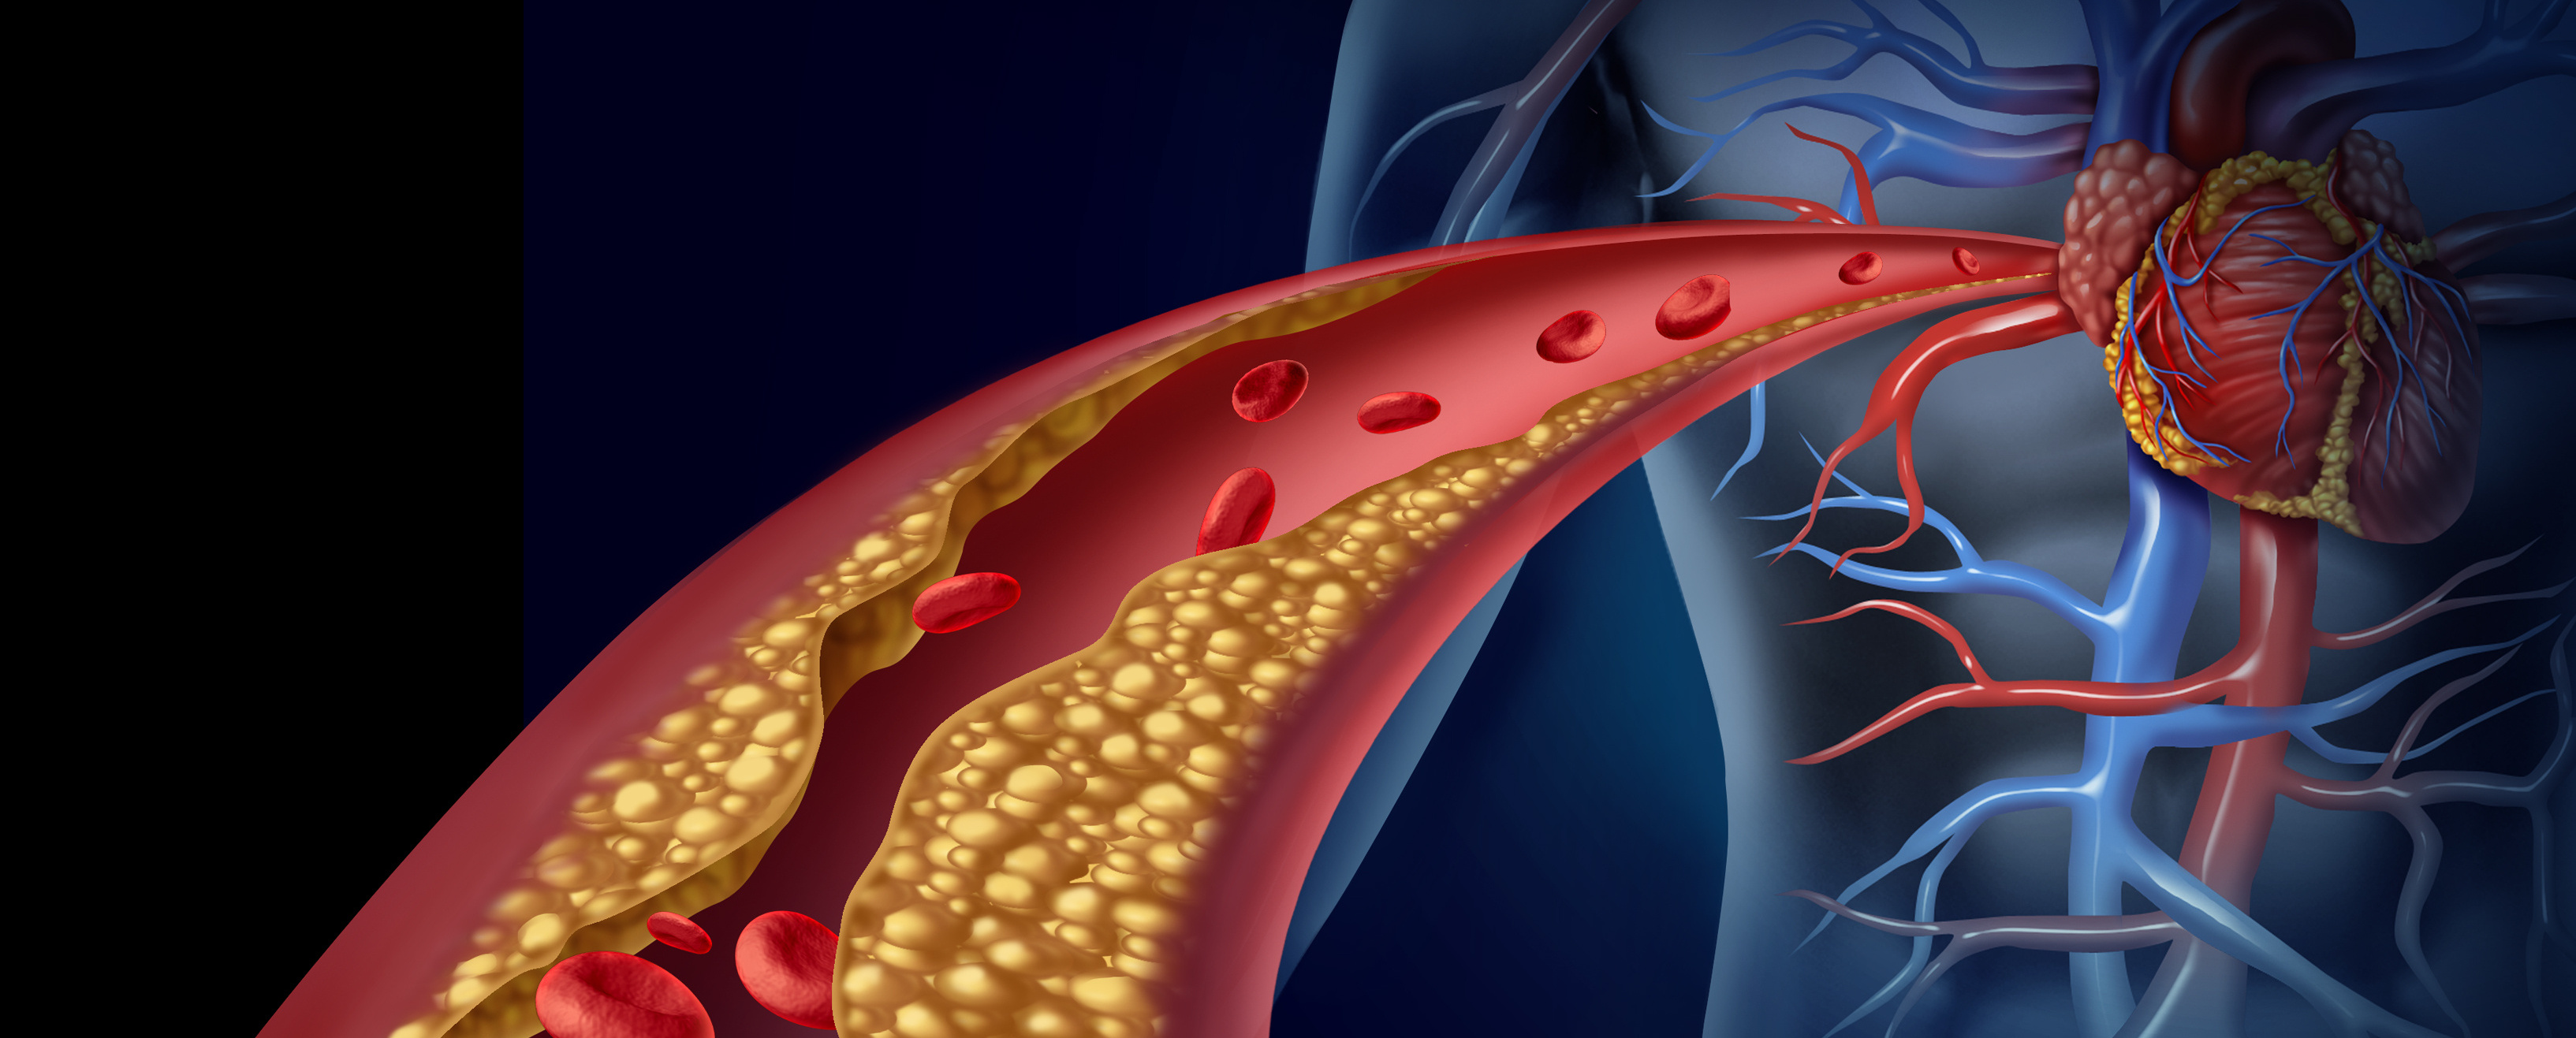 Hypercholesterolemia Treatment Granted FDA Priority Review